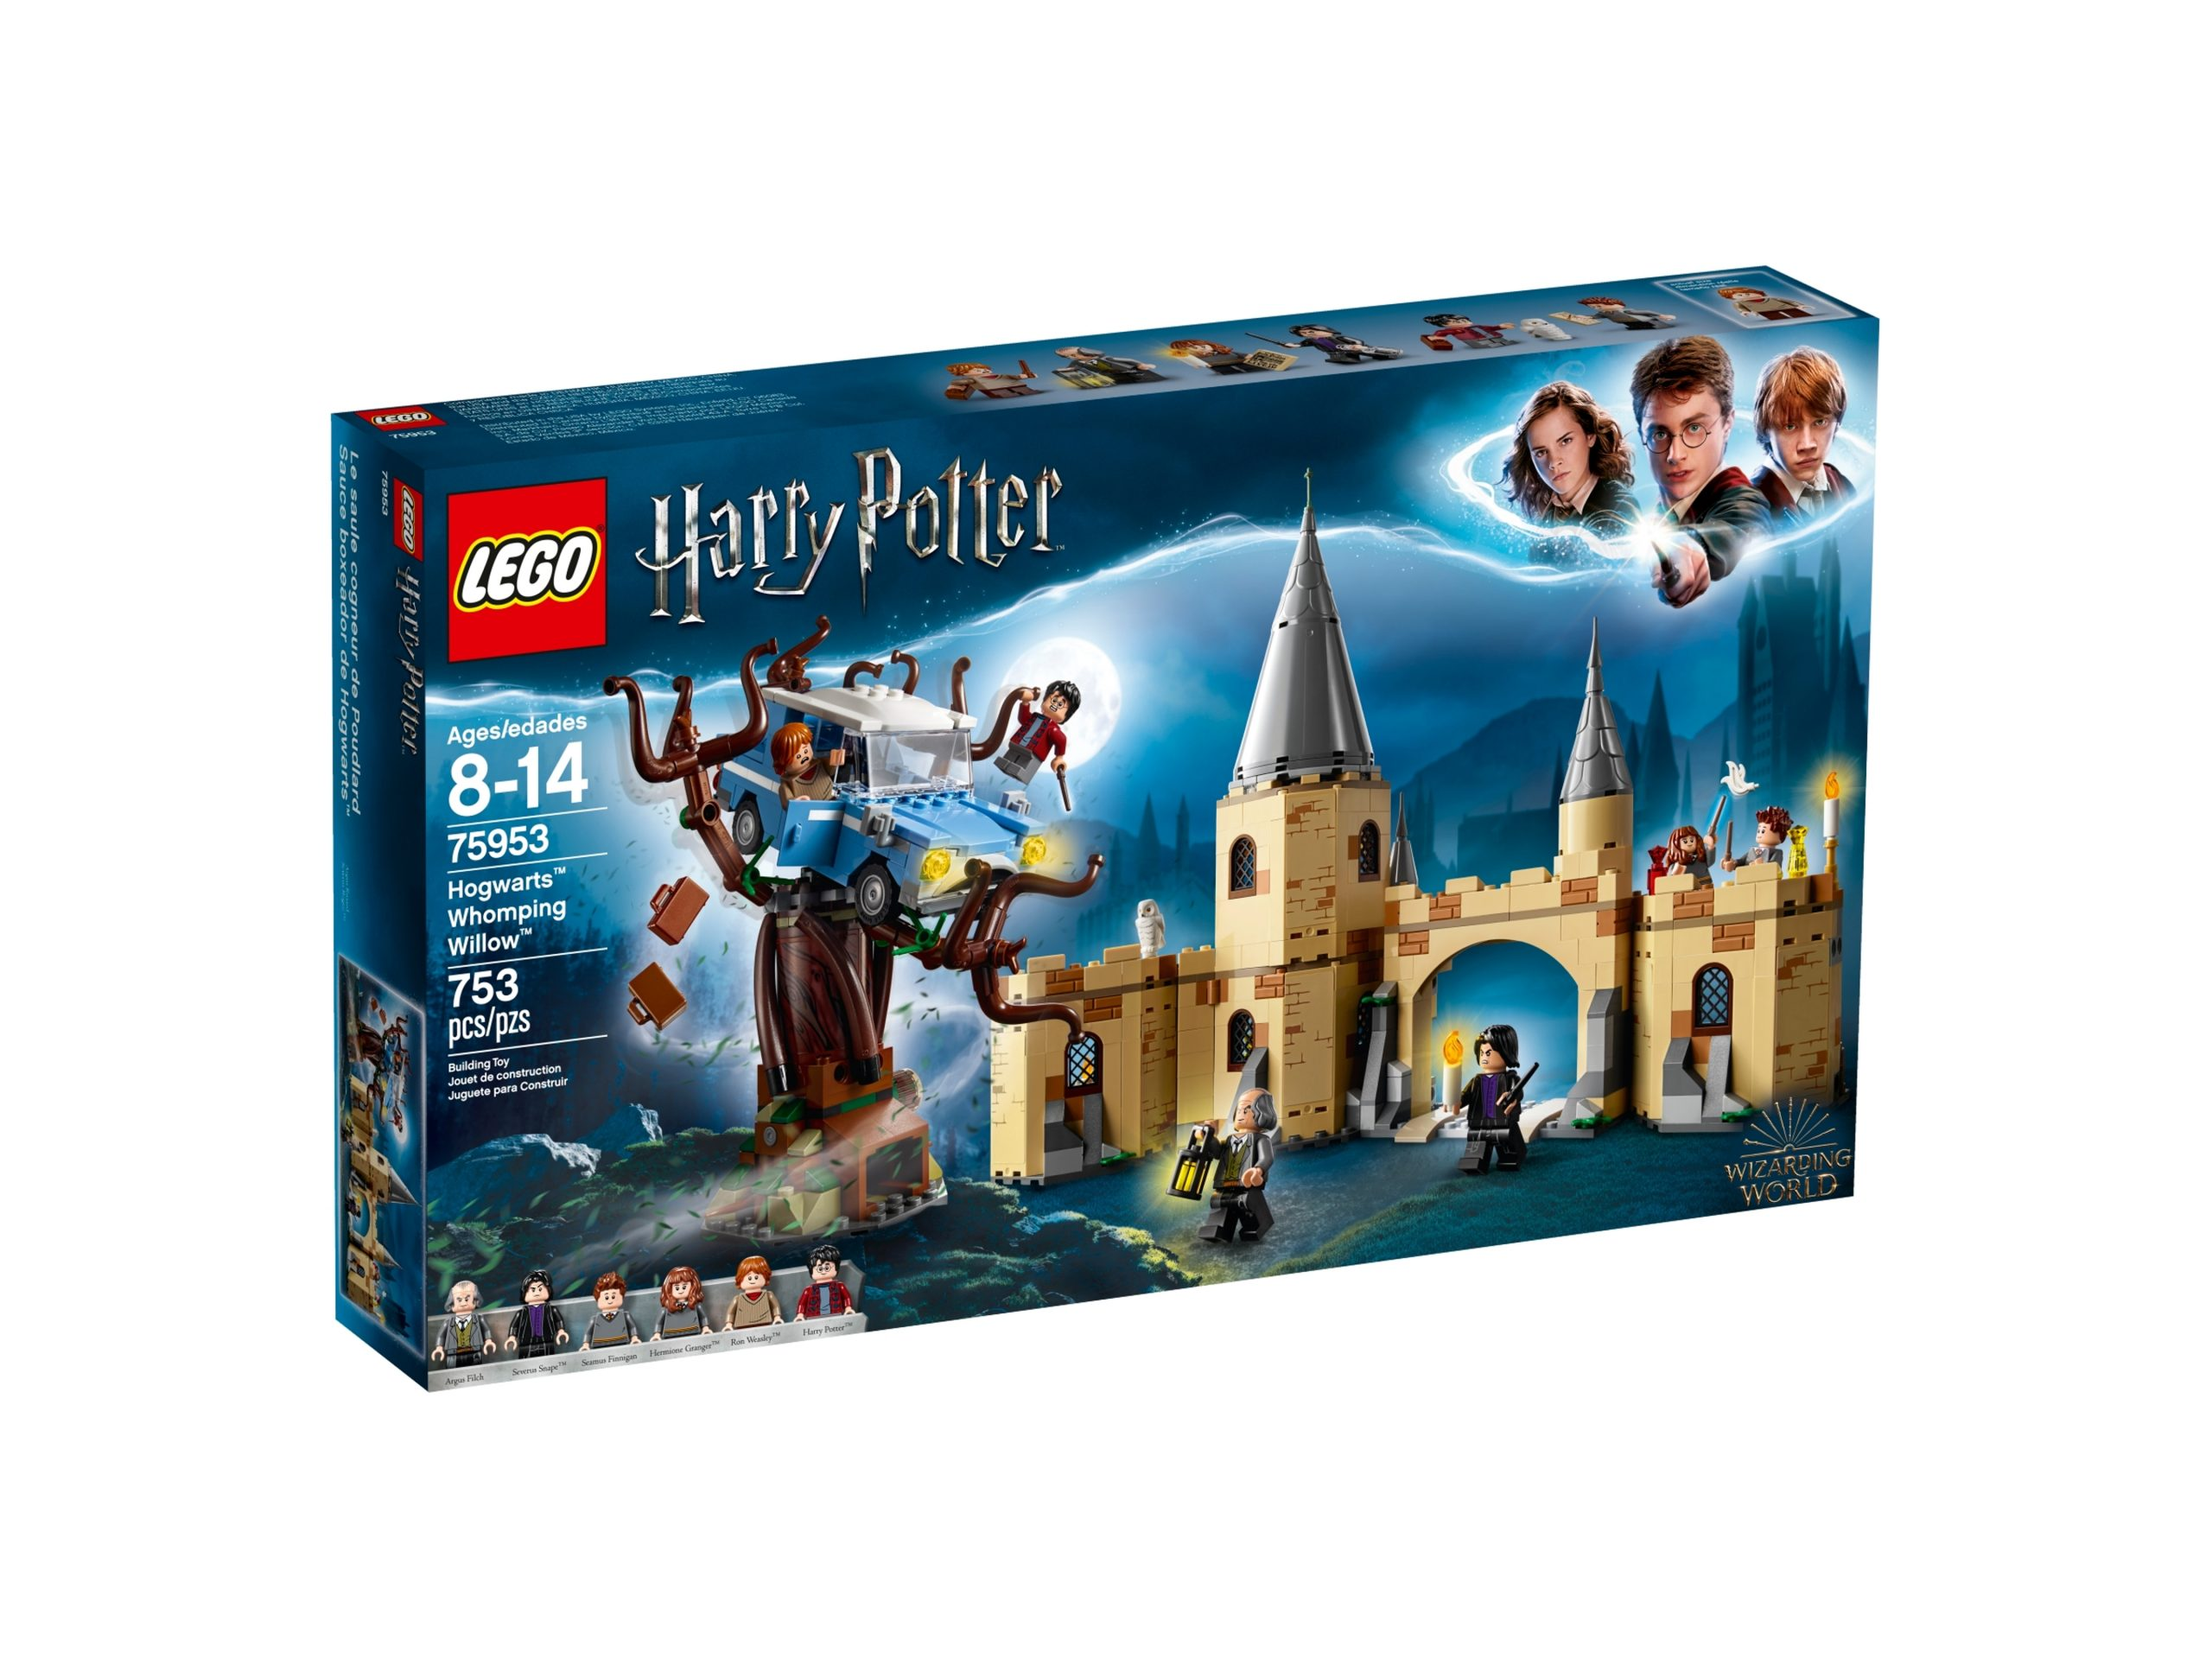 lego 75953 hogwarts whomping willow scaled